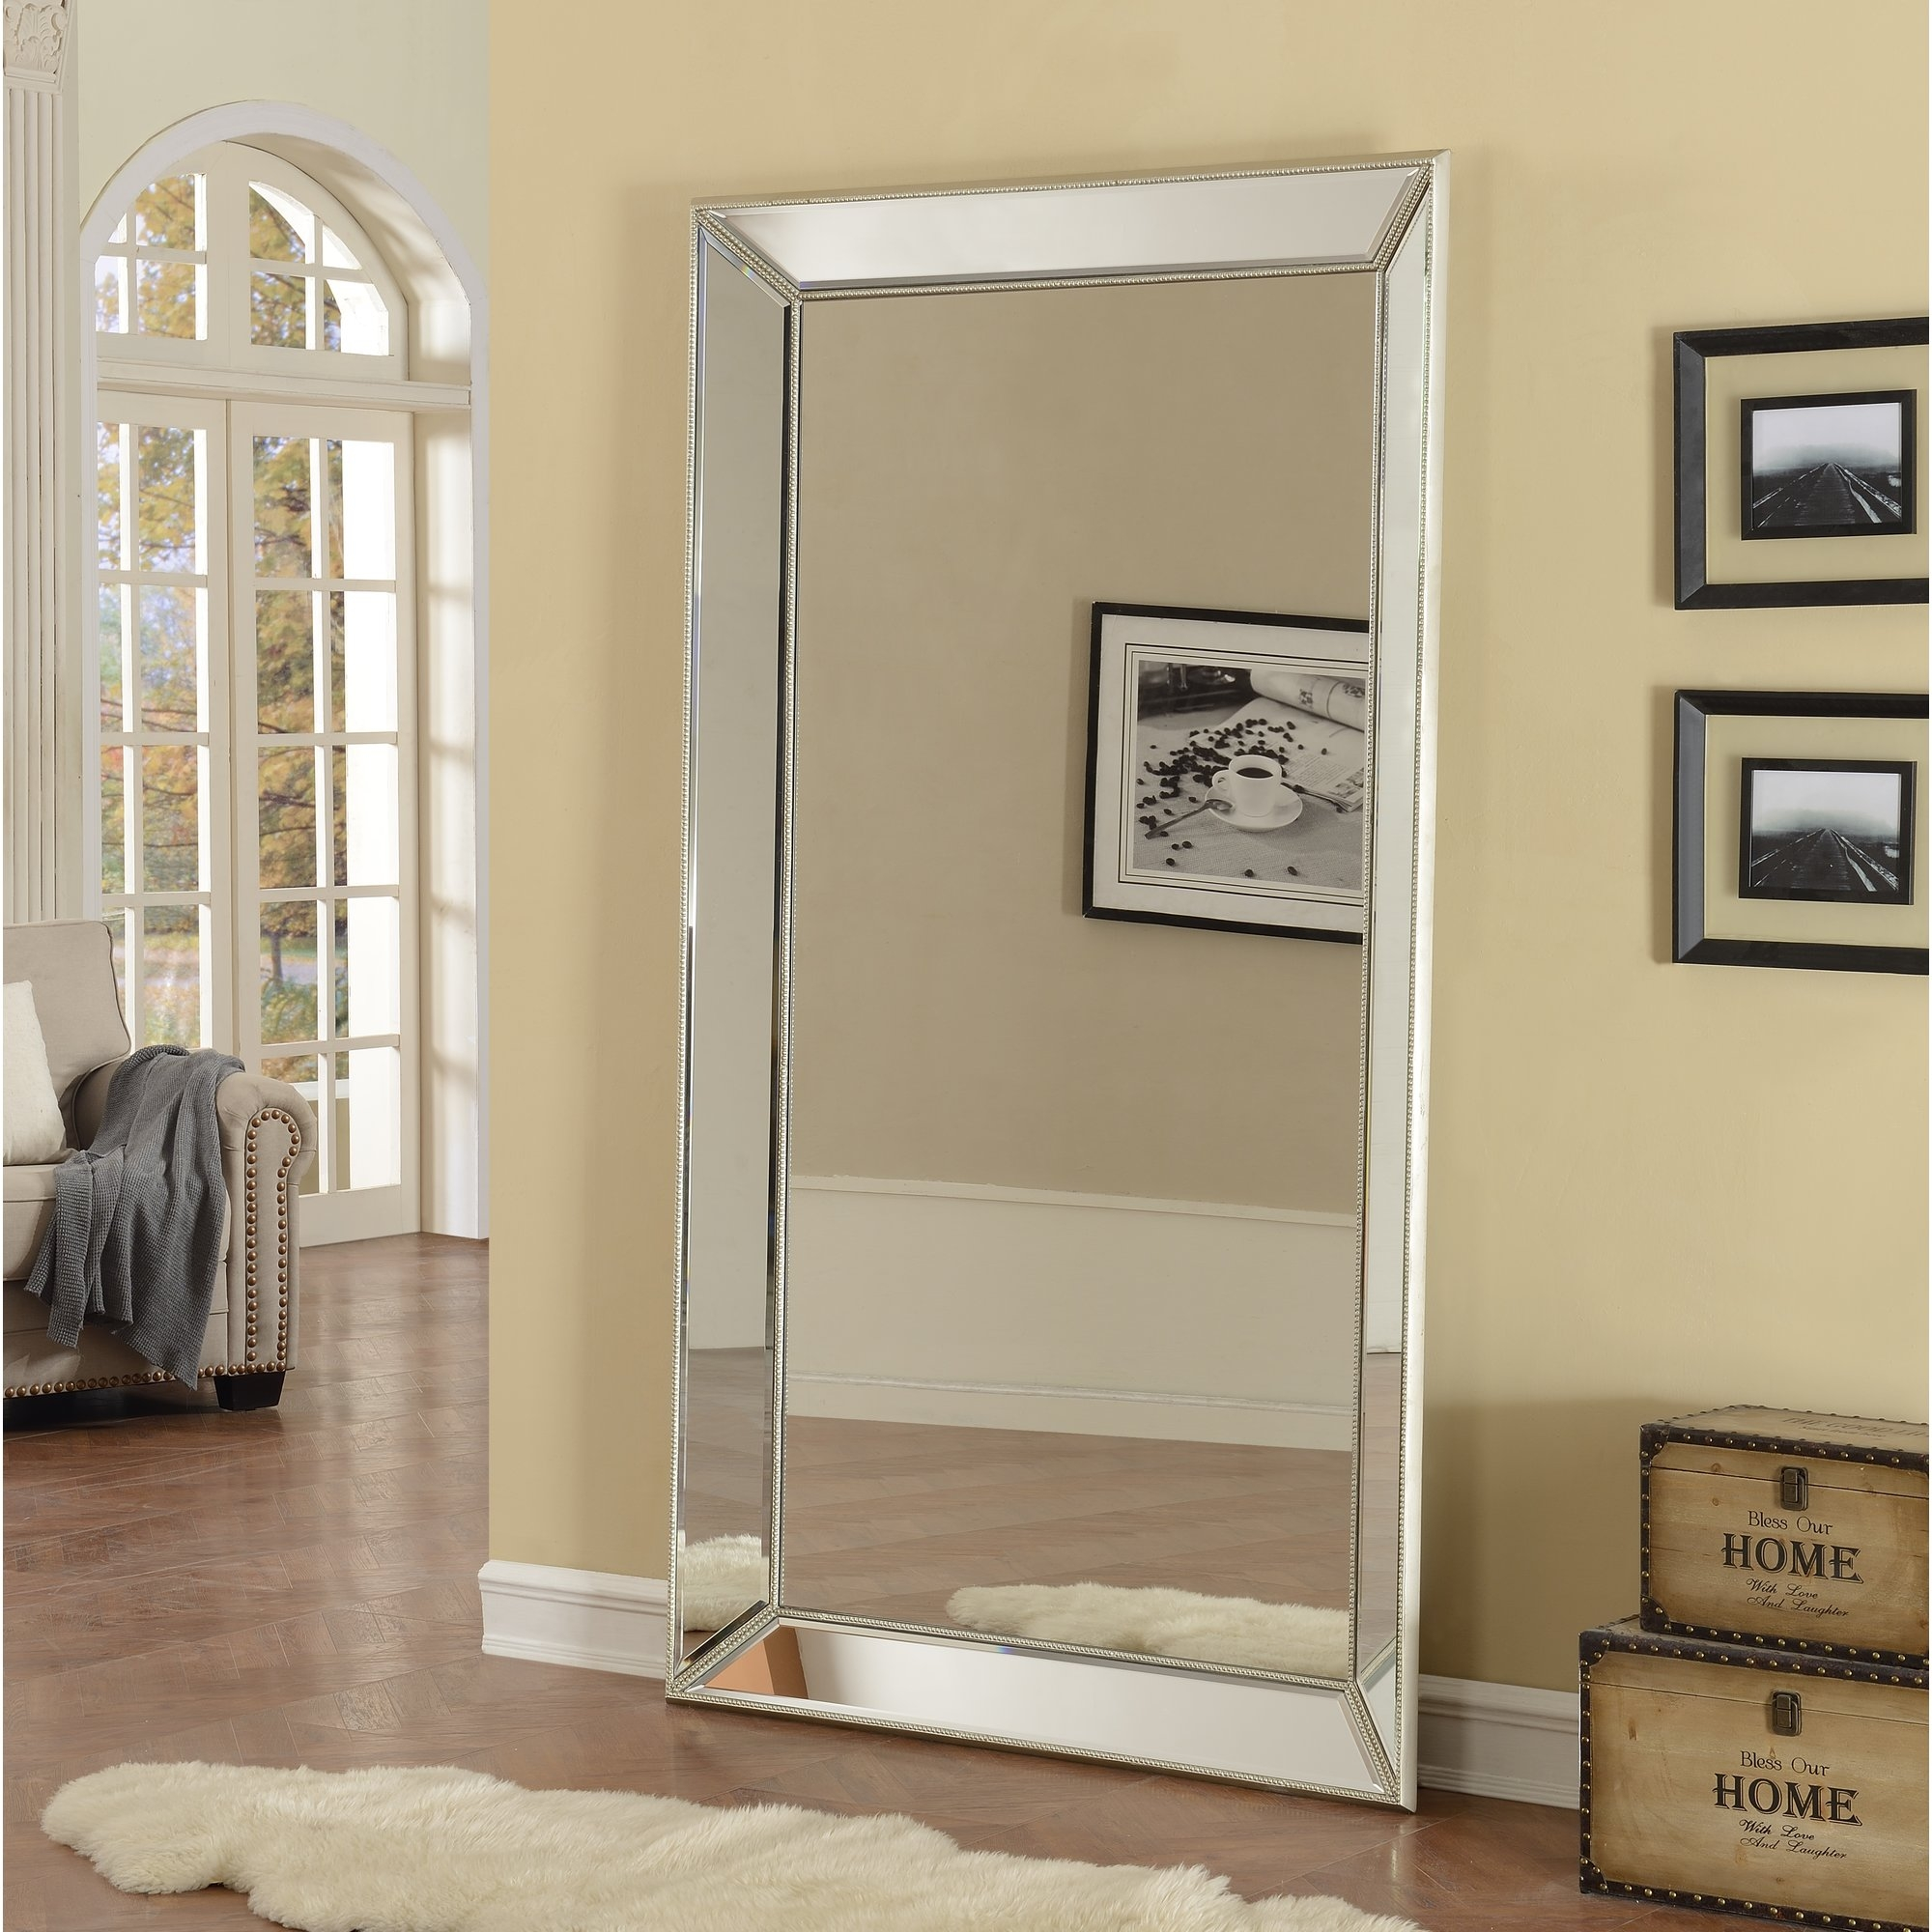 Floor Mirrors Youll Love Wayfair With Regard To Vintage Stand Up Mirror (Image 4 of 15)